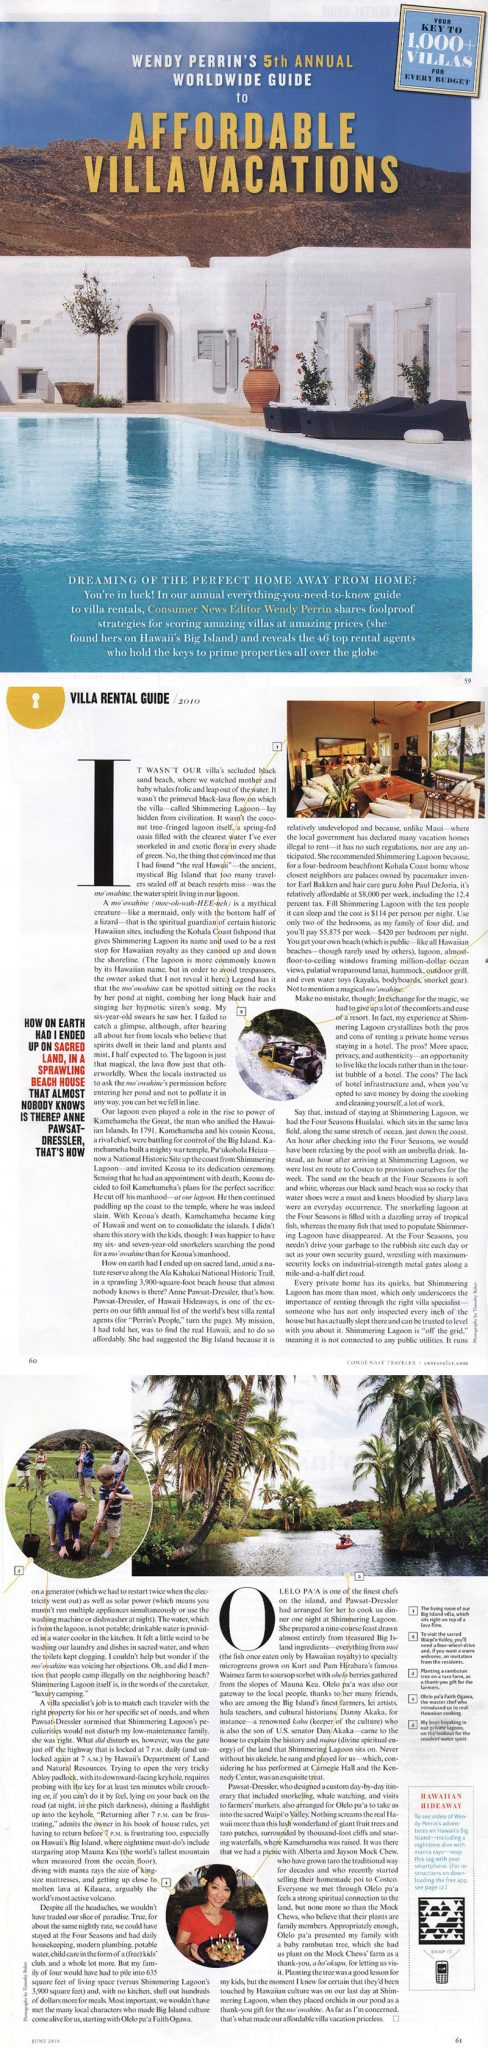 2010-06-conde-nast-traveler-affordable-villas-article